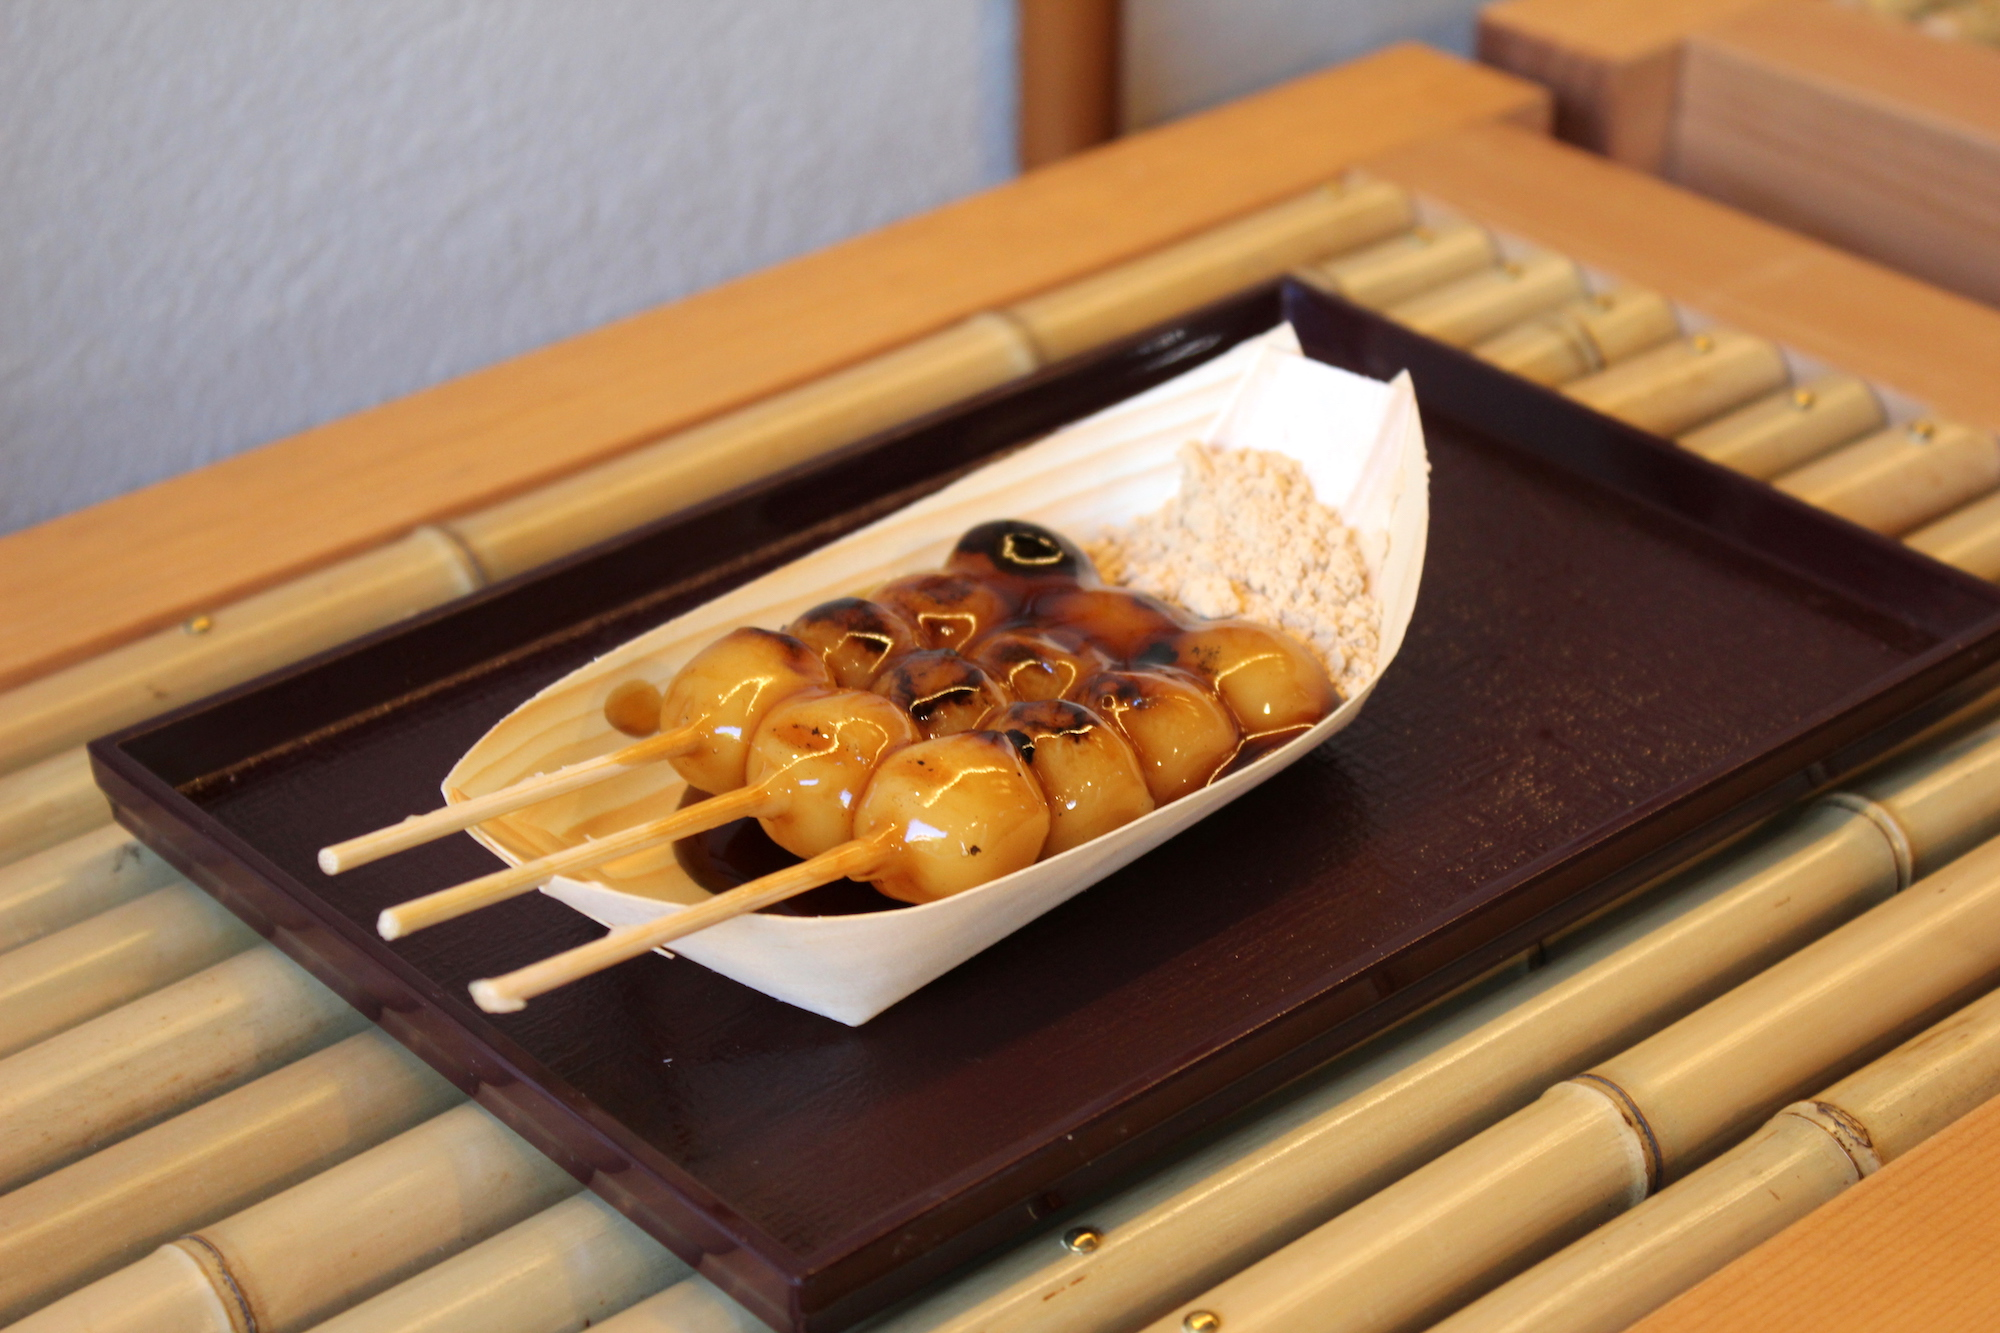 Fresh mitarashi dango